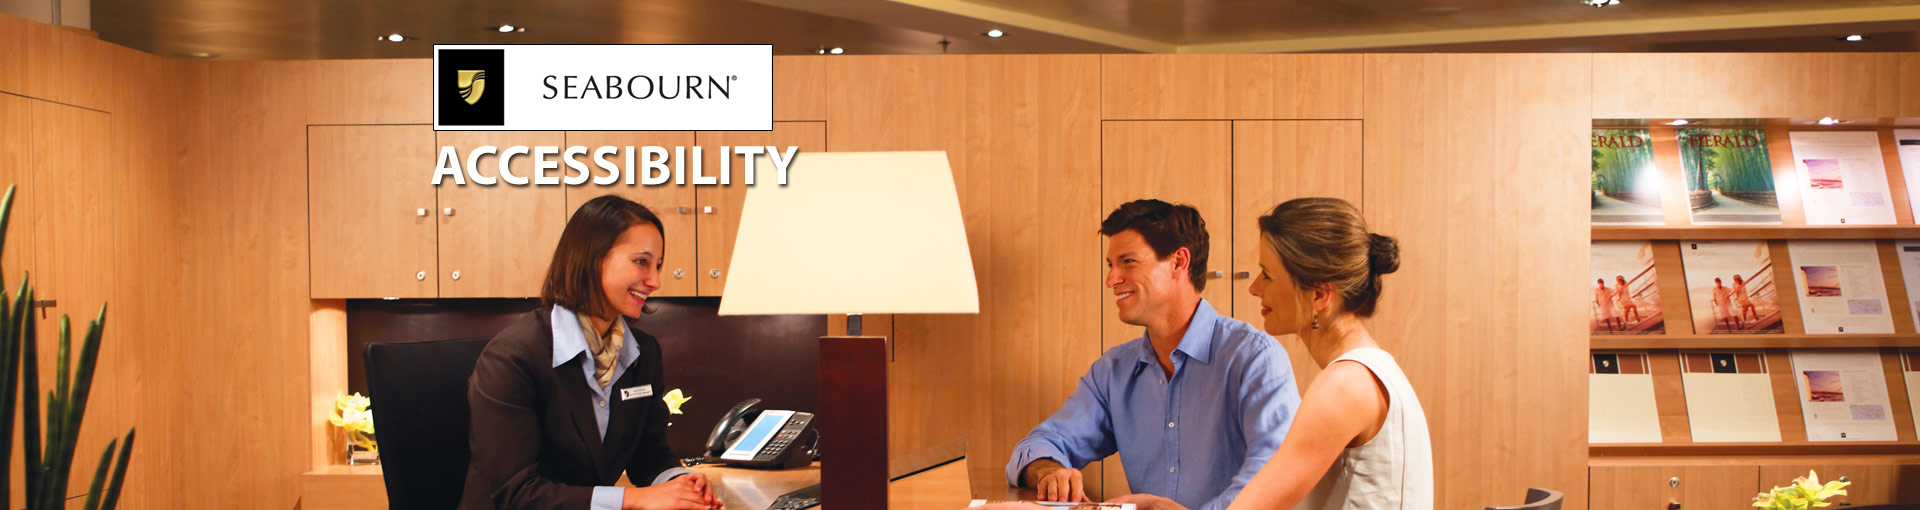 Seabourn Cruise Line Accessibility